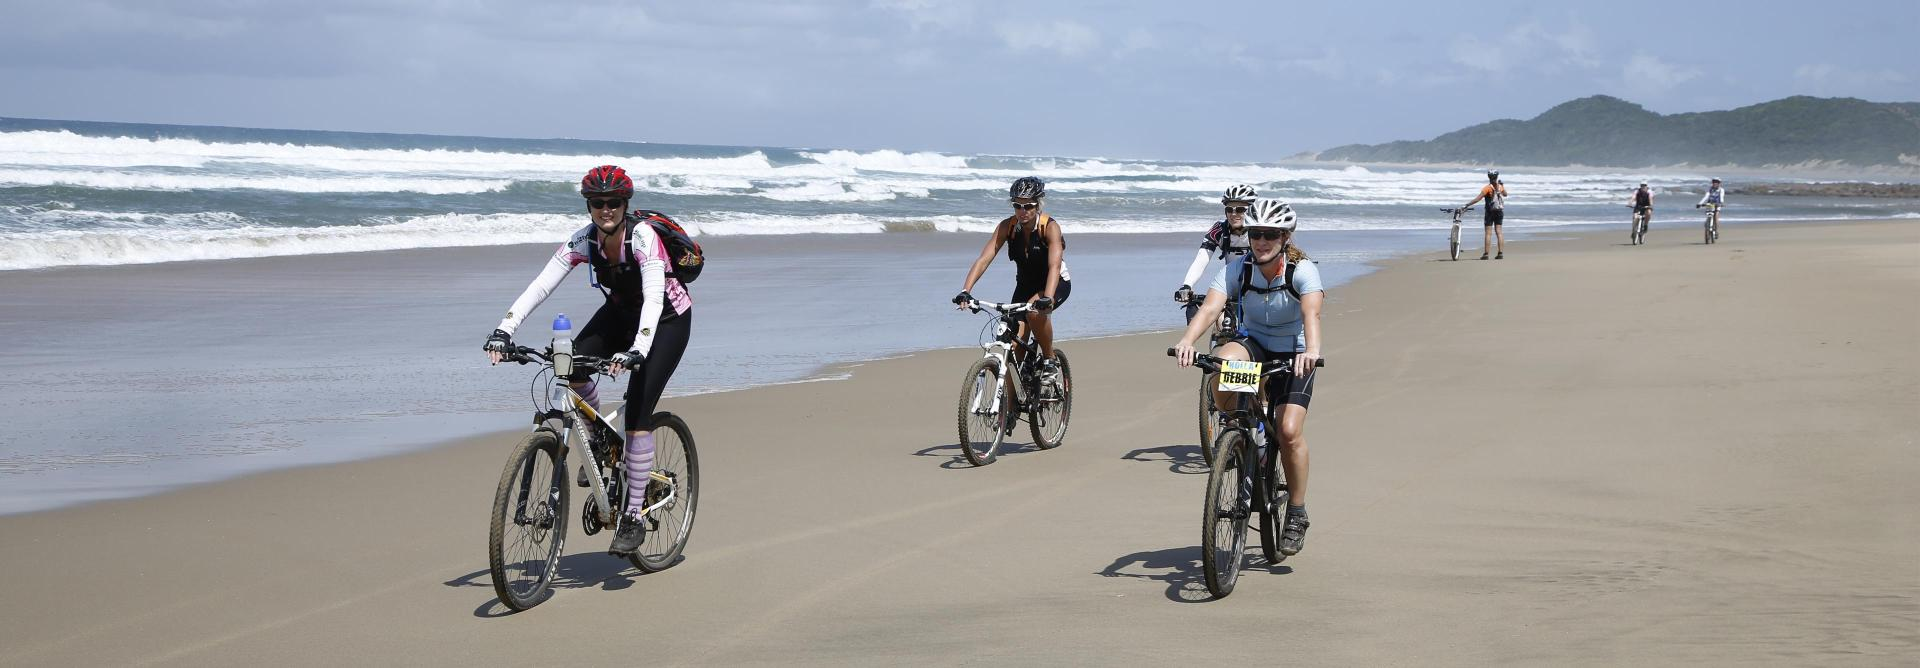 Cycle South Africa's Wild Coast